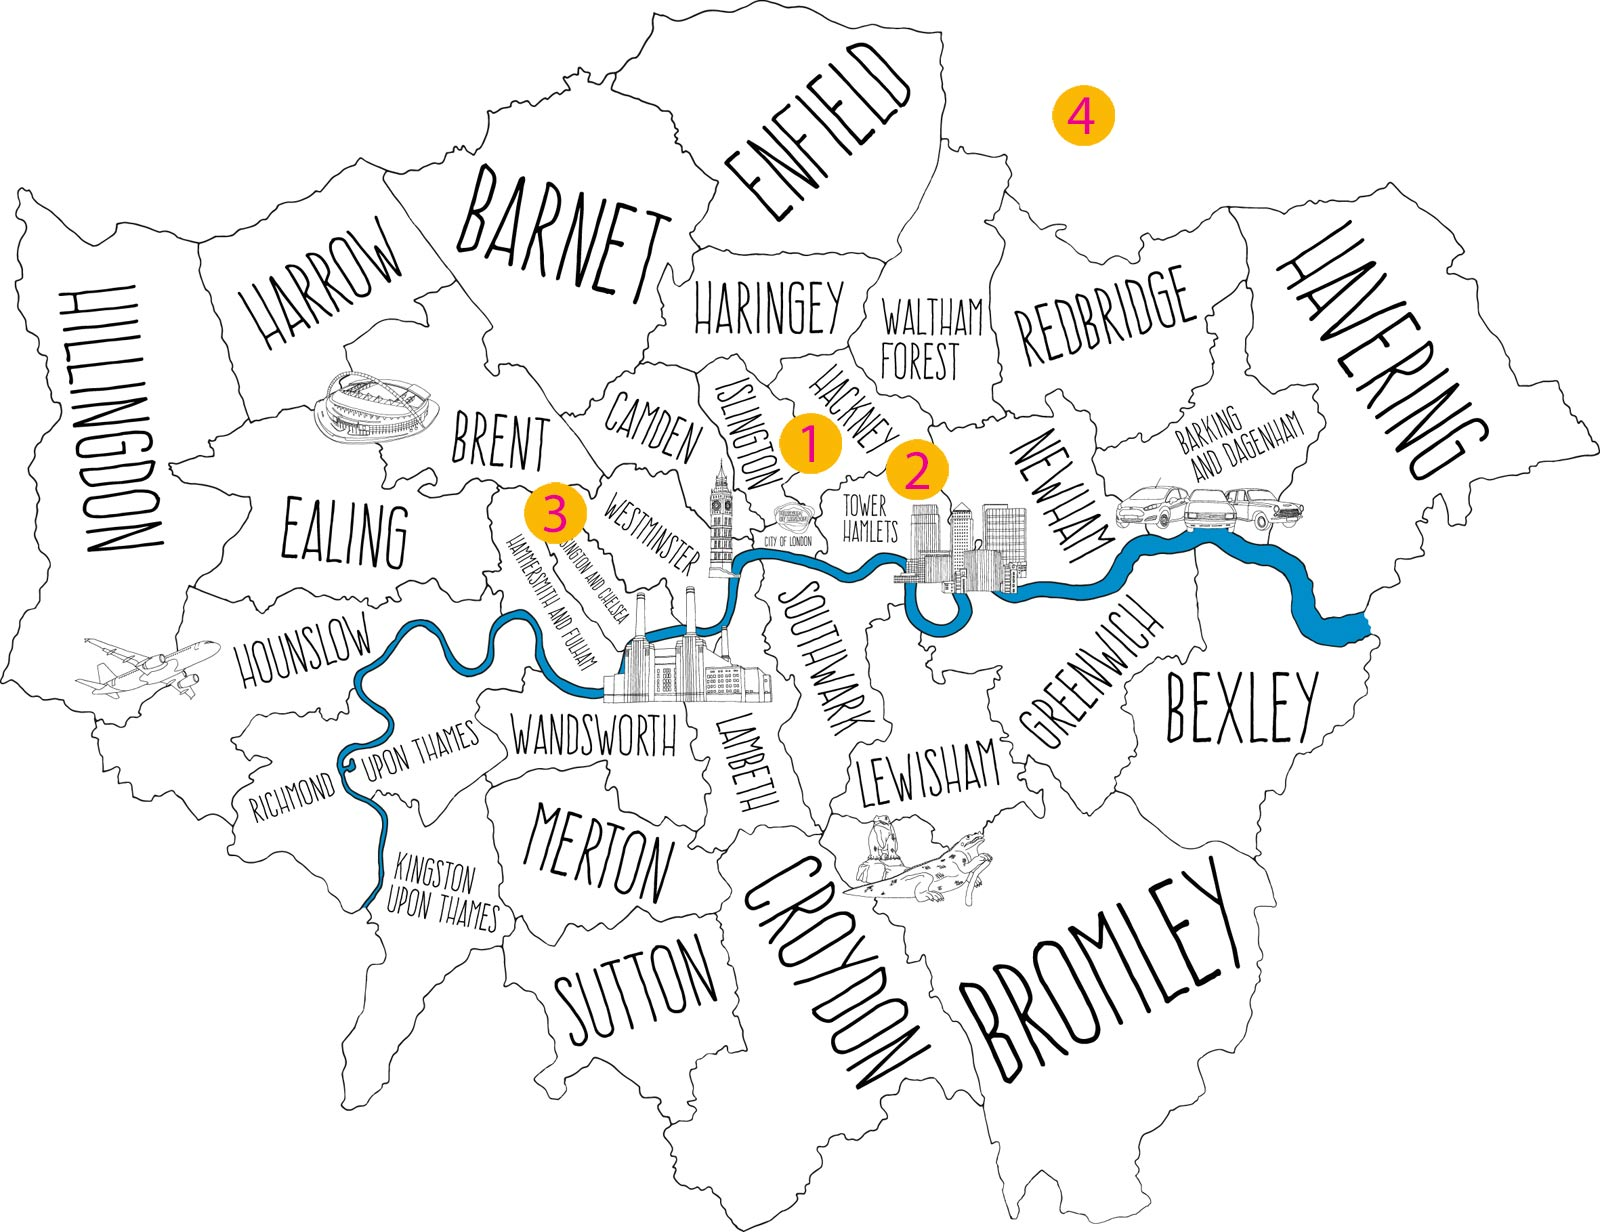 A map of London showing four different Curating London projects across the city.